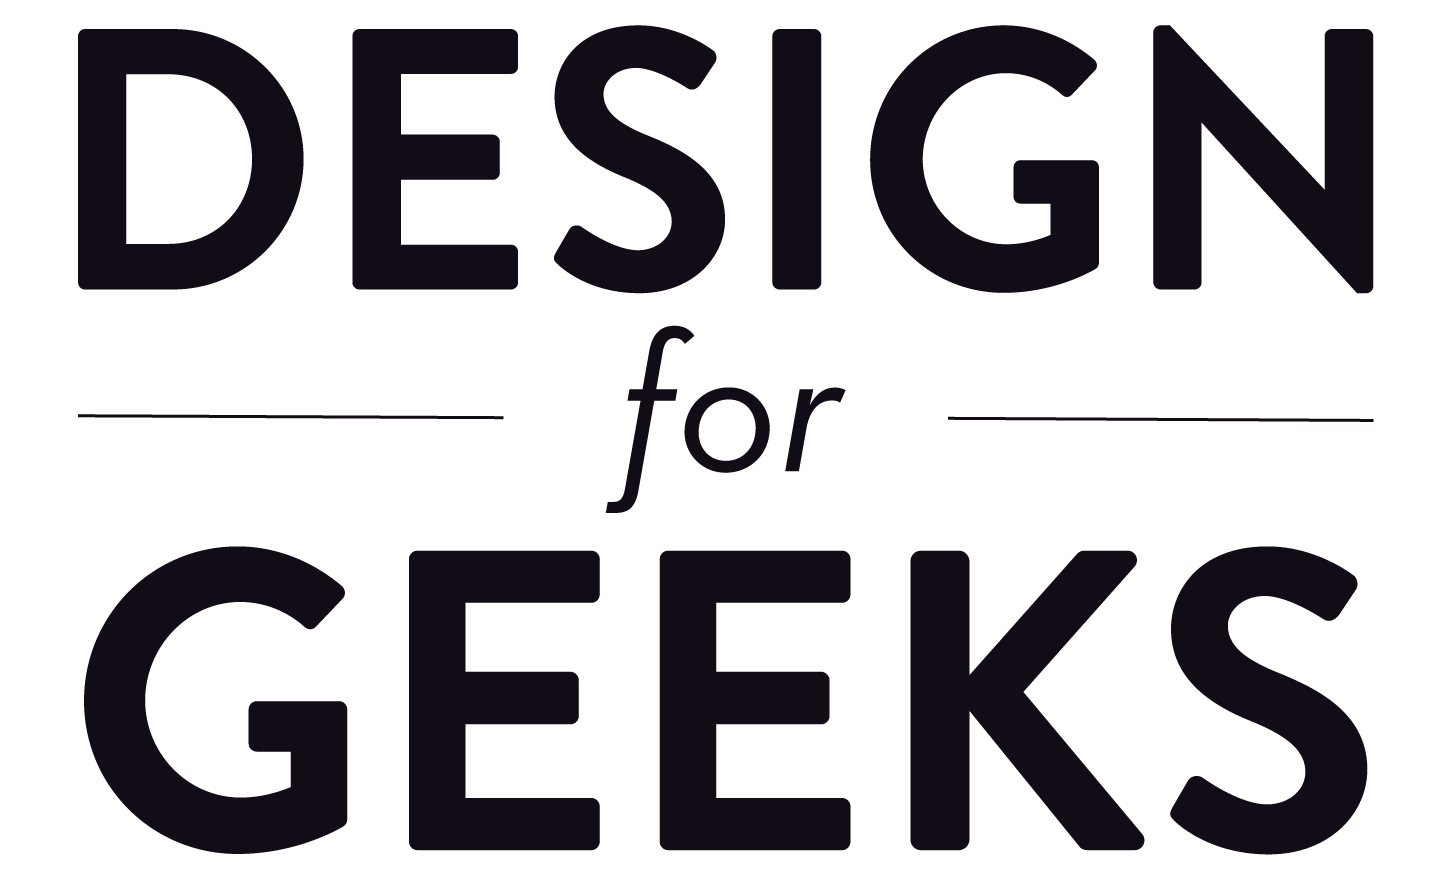 Design for Geeks Academy